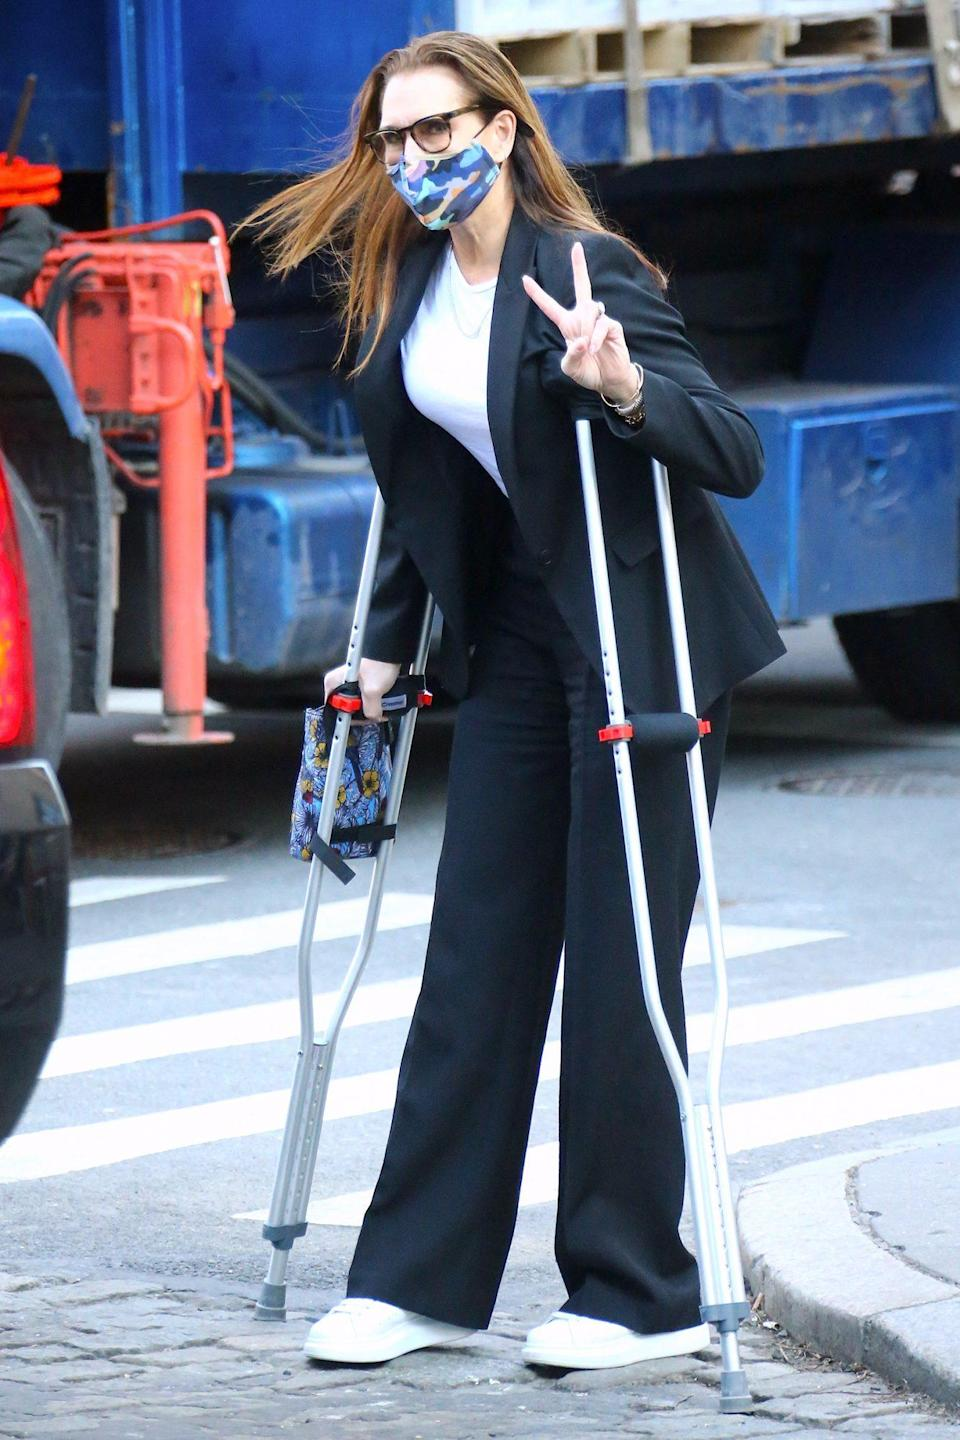 "<p>Brooke Shields arrives at Café Cluny on crutches, after <a href=""https://people.com/style/brooke-shields-talks-recovery-after-breaking-femur/"" rel=""nofollow noopener"" target=""_blank"" data-ylk=""slk:breaking her femur last month,"" class=""link rapid-noclick-resp"">breaking her femur last month,</a> on Tuesday in N.Y.C.'s West Village.</p>"